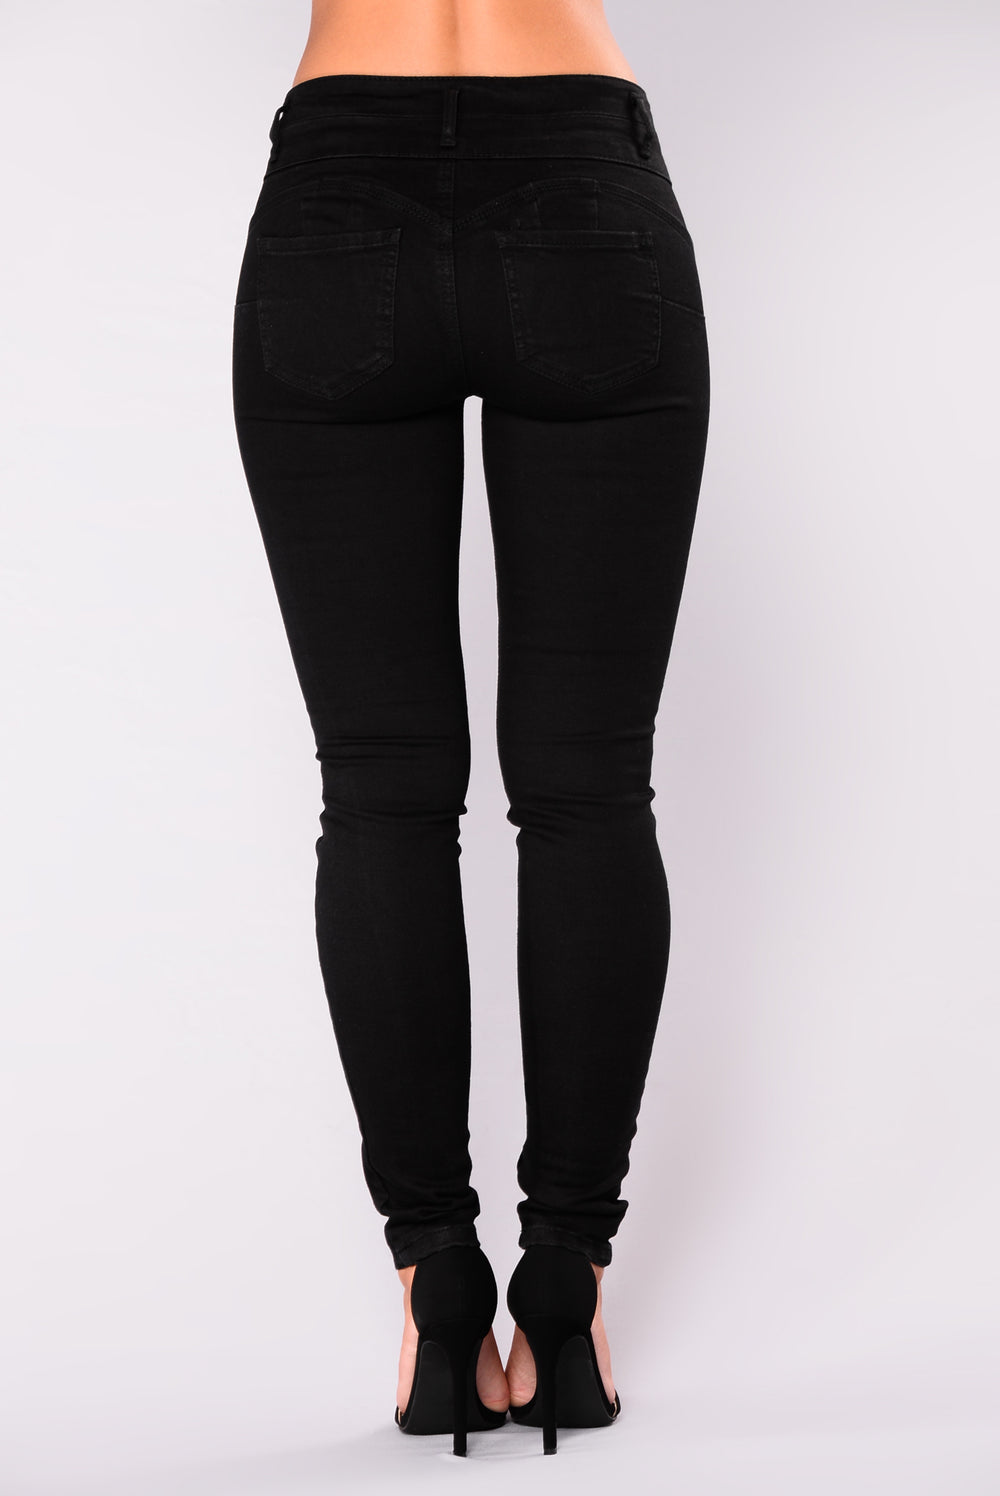 Body Right Booty Shaping Jeans - Black